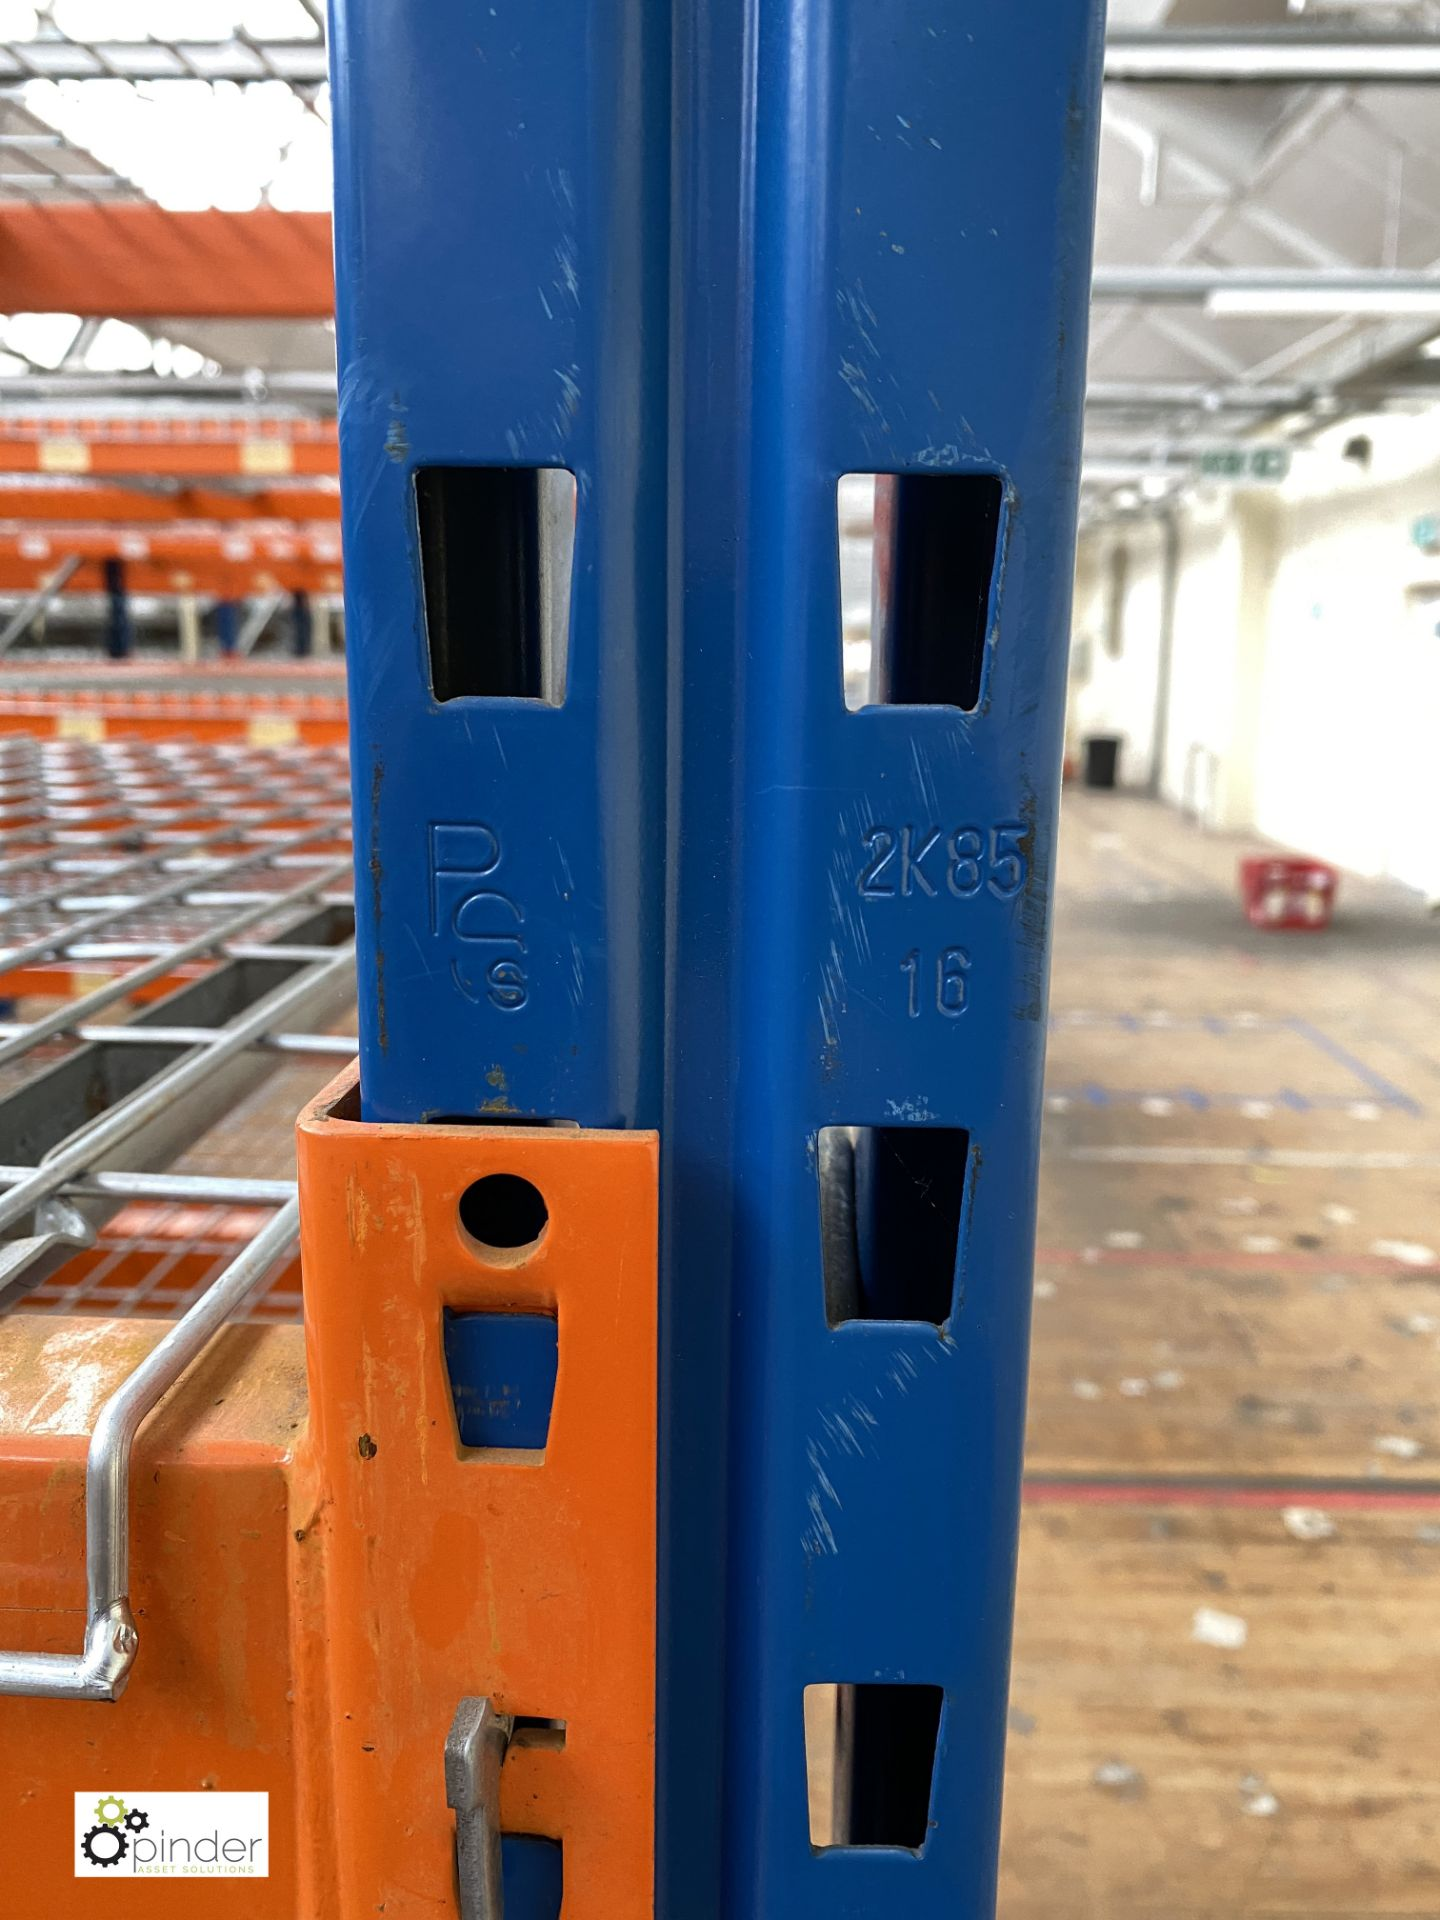 7 bays PSS 2K85 16 boltless Stock Racking, comprising 8 uprights 2400mm x 1200mm, 56 beams 2700mm, - Image 4 of 4